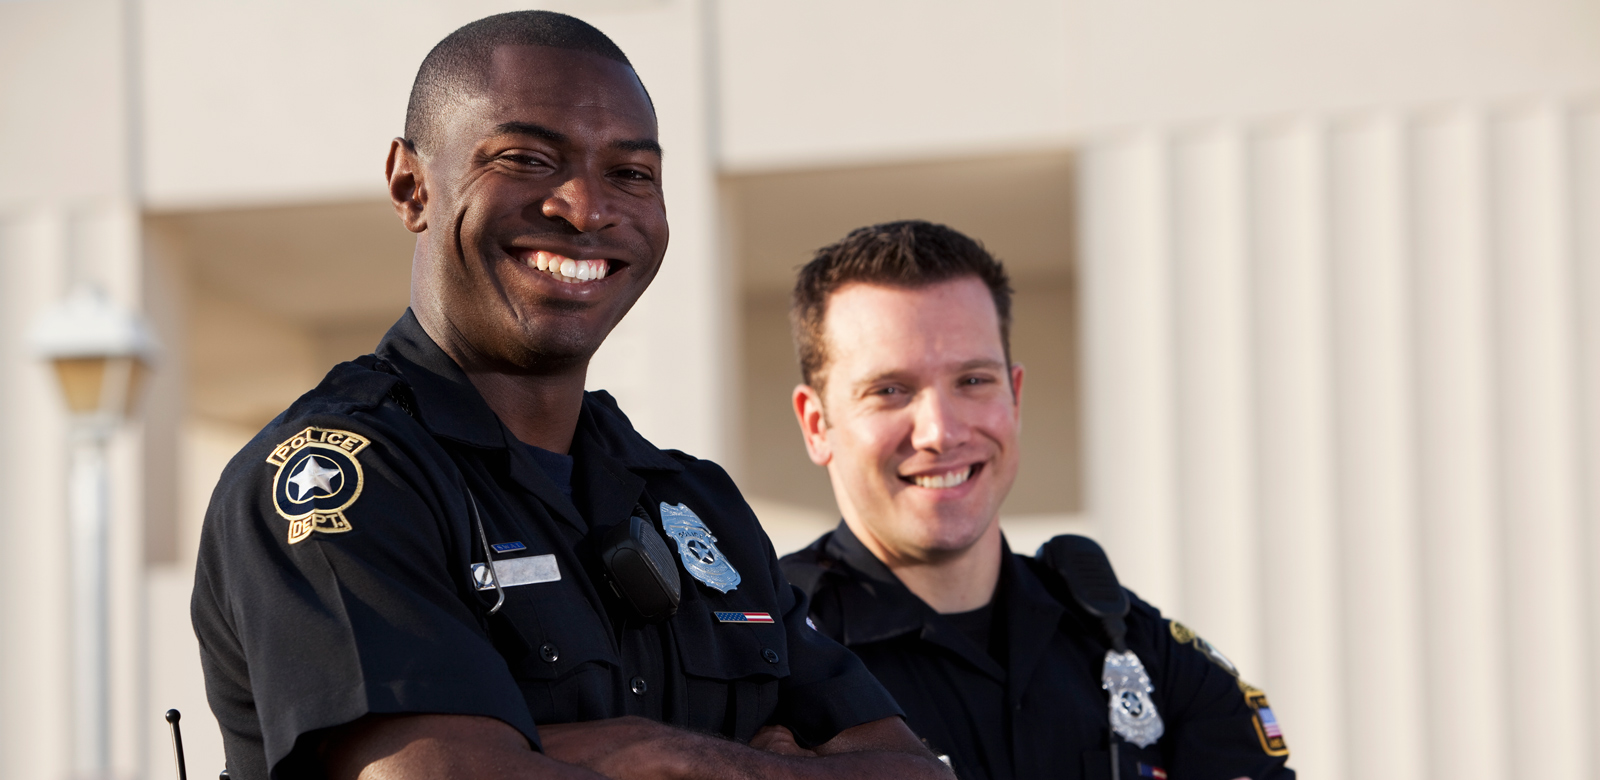 Pair of officers